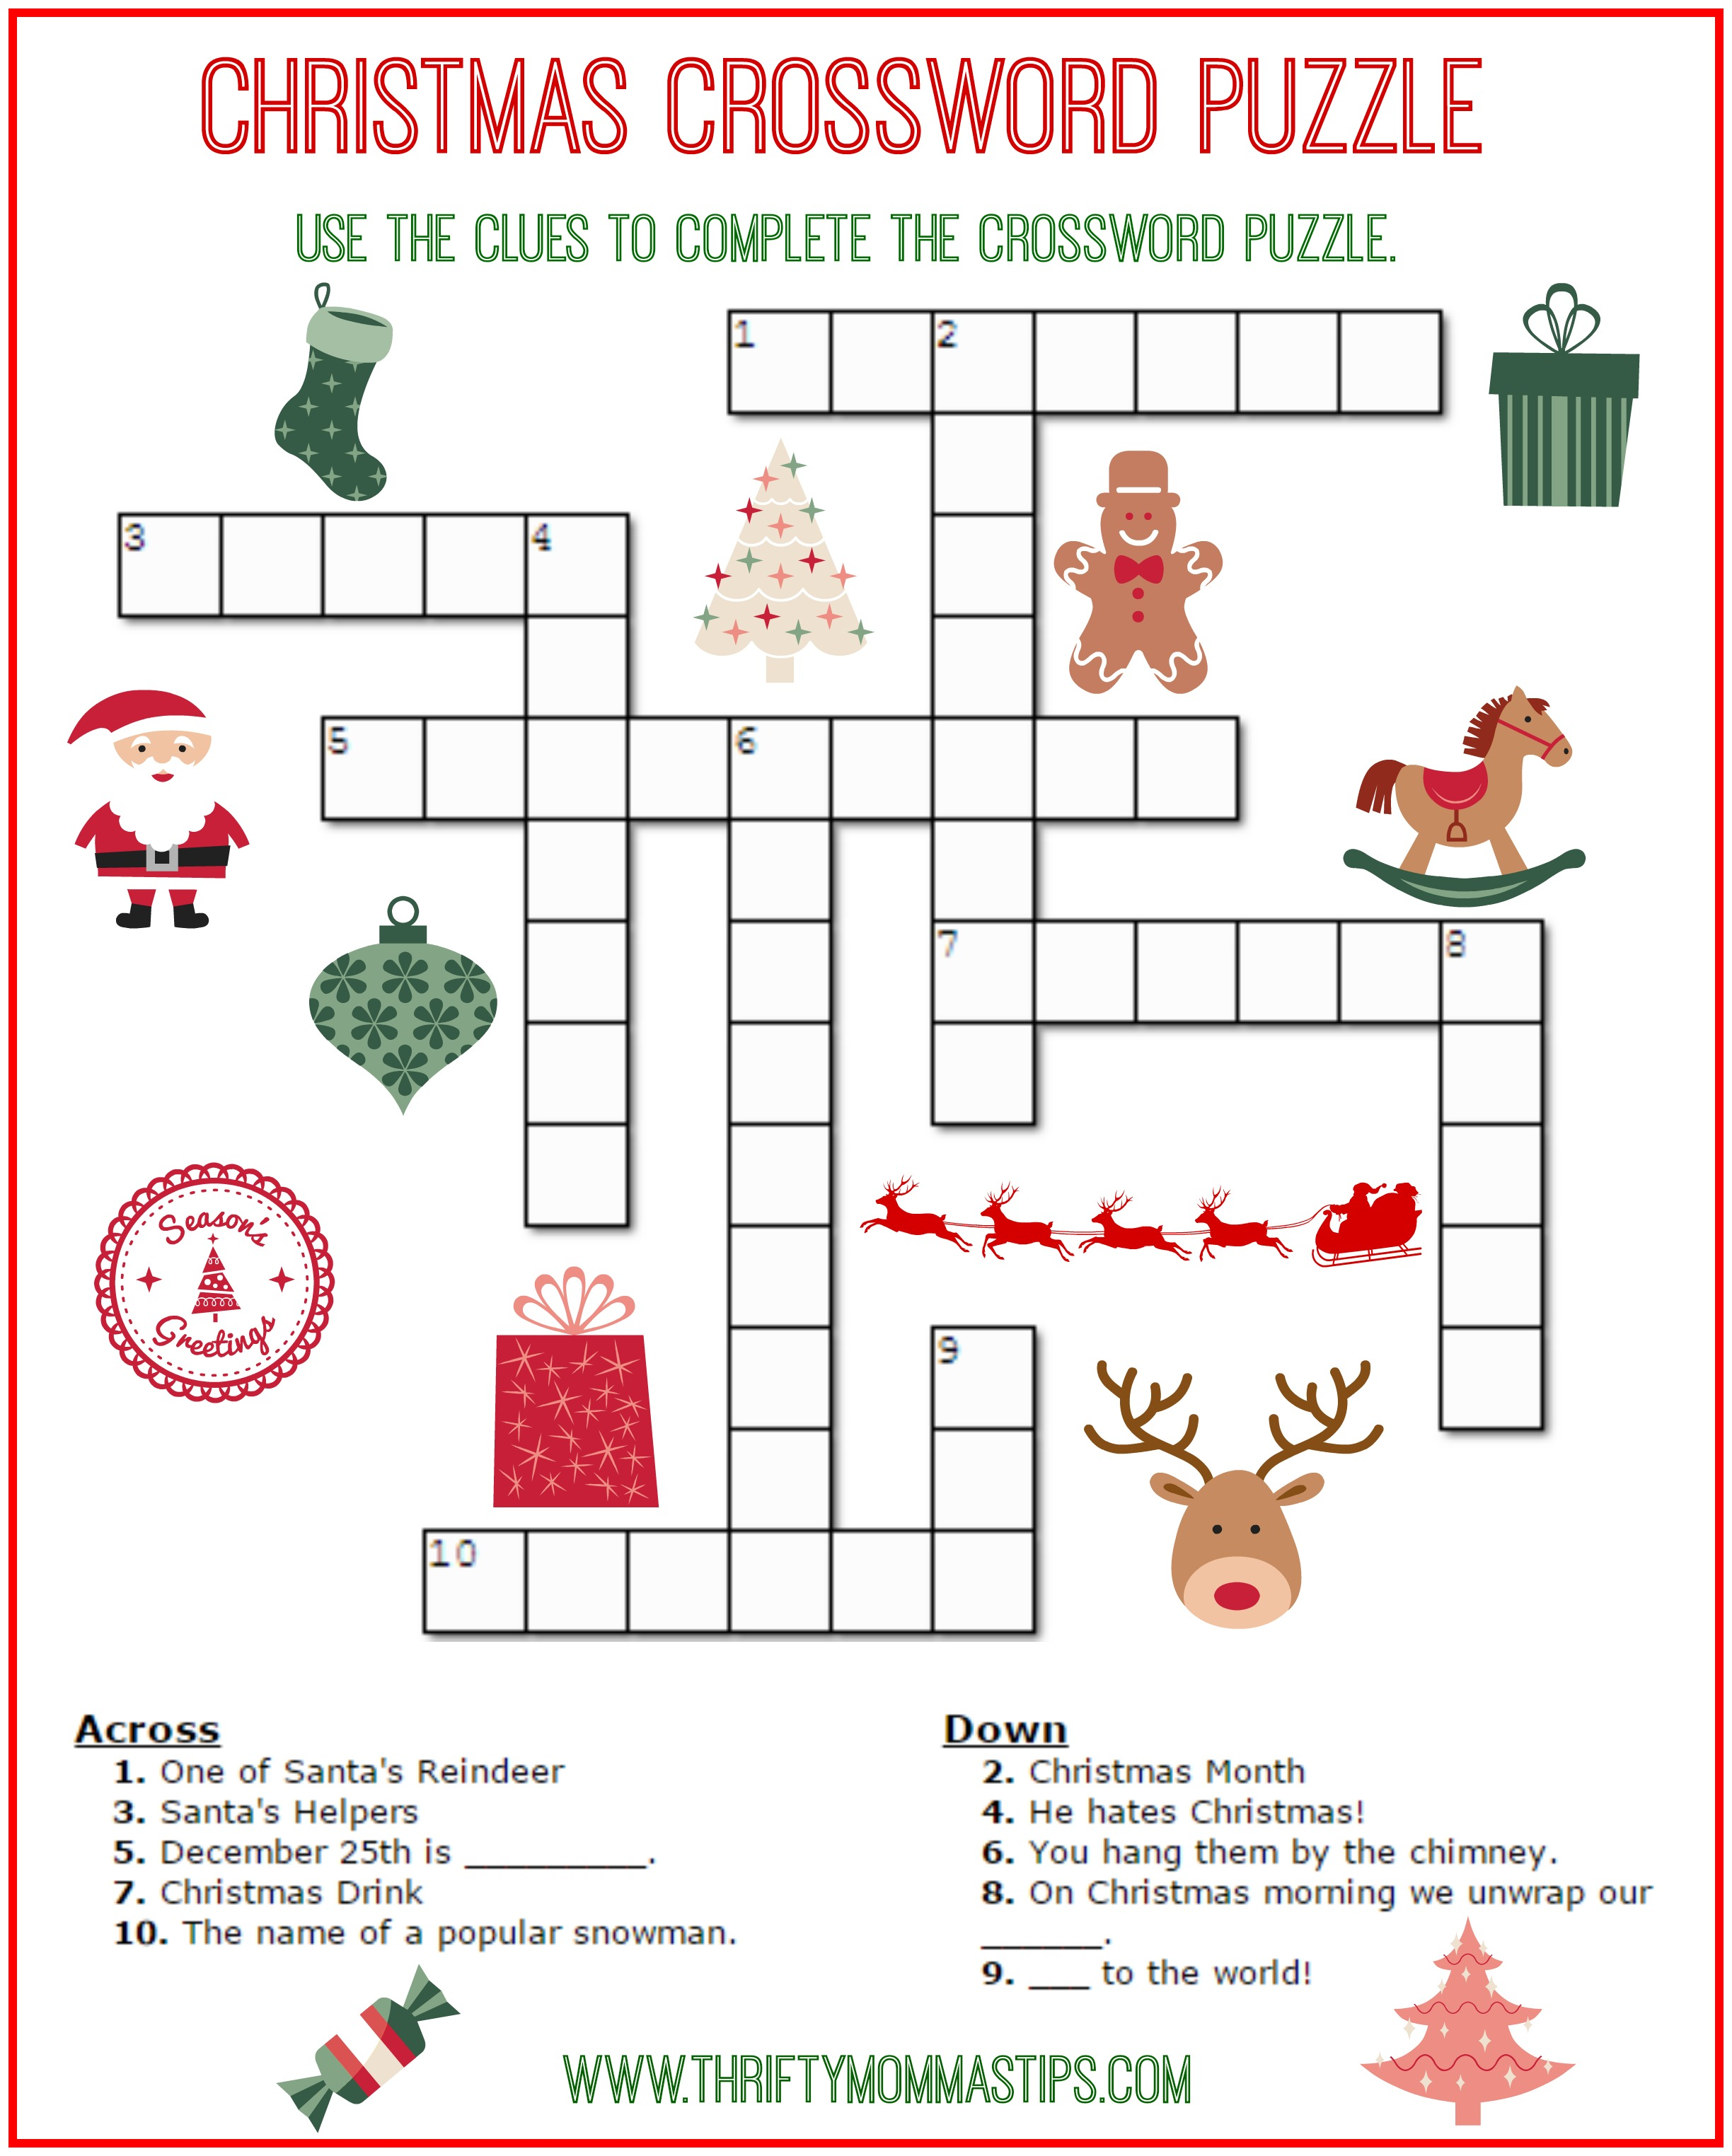 graphic relating to Simple Crossword Puzzles Printable named Xmas Crossword Puzzle Printable - Thrifty Mommas Strategies